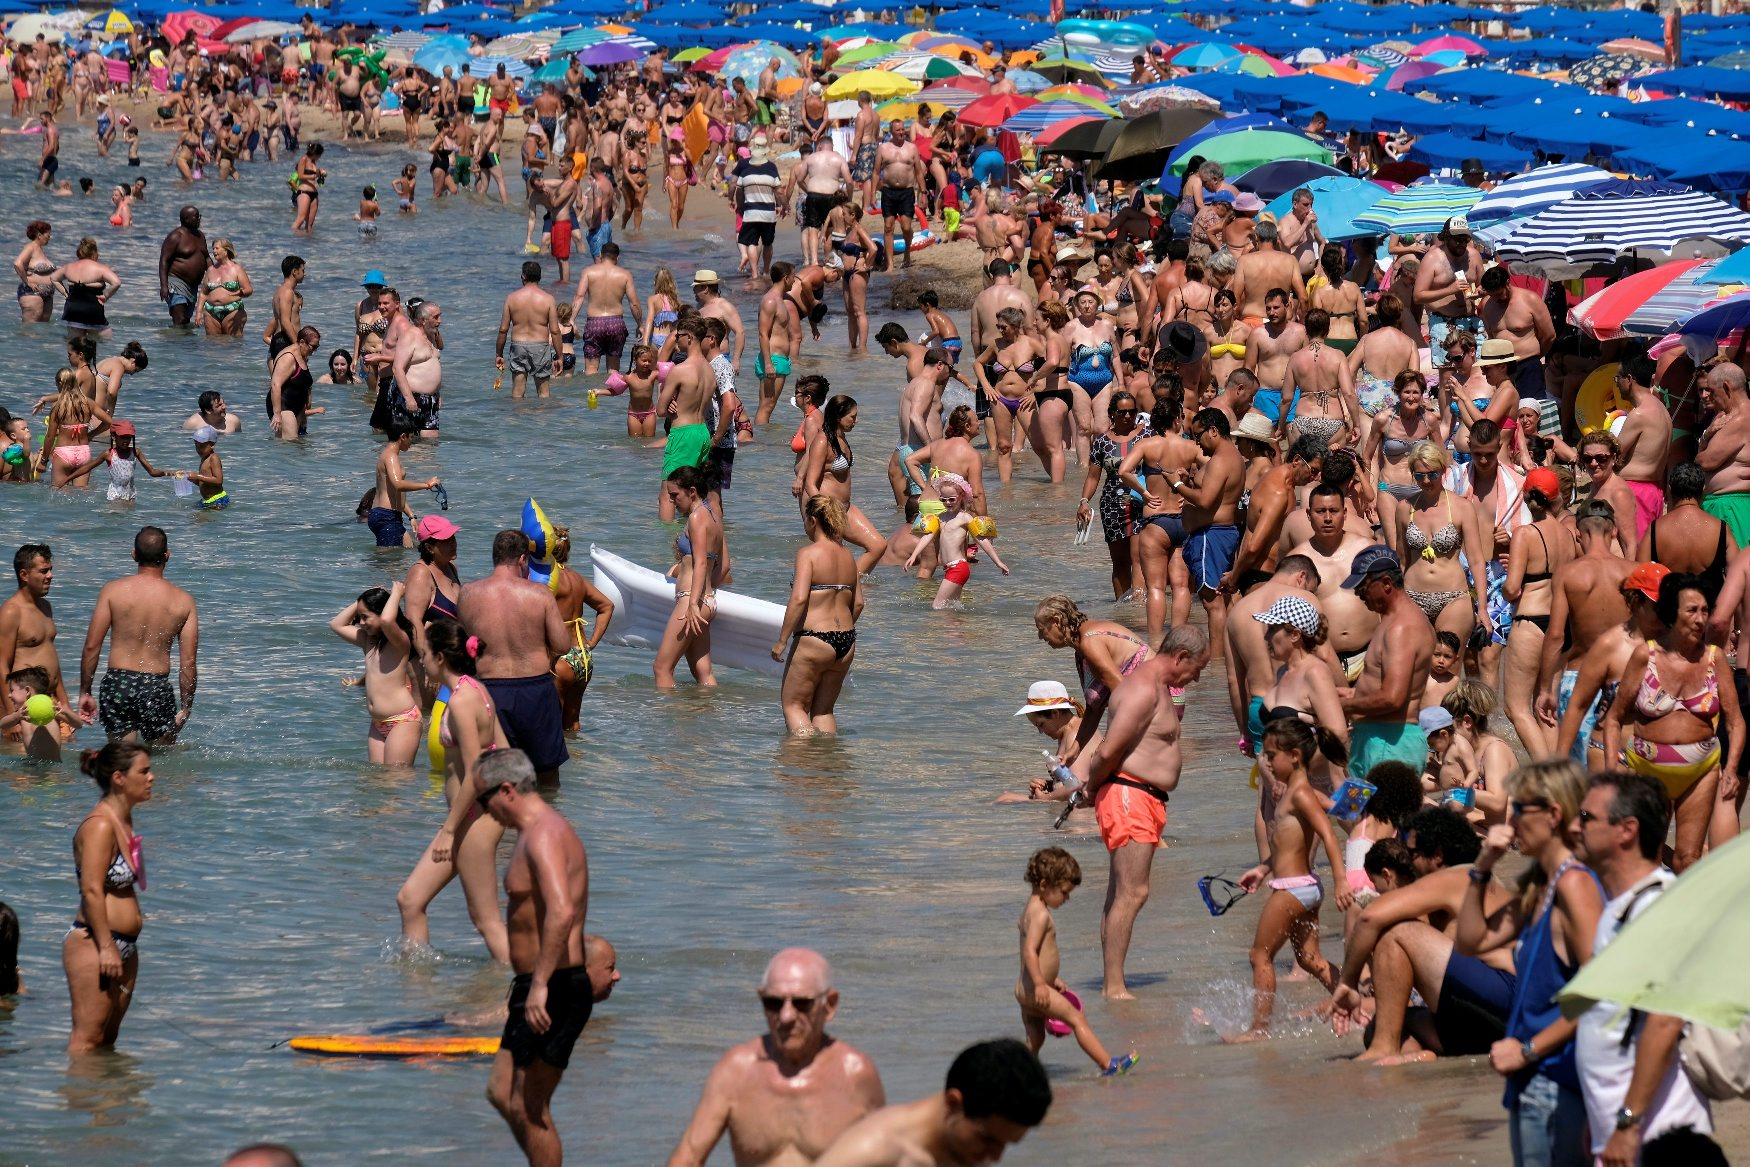 People cool off at the beach during the heatwave in the southeastern coastal town of Benidorm, Spain, August 2, 2018. REUTERS/Heino Kalis